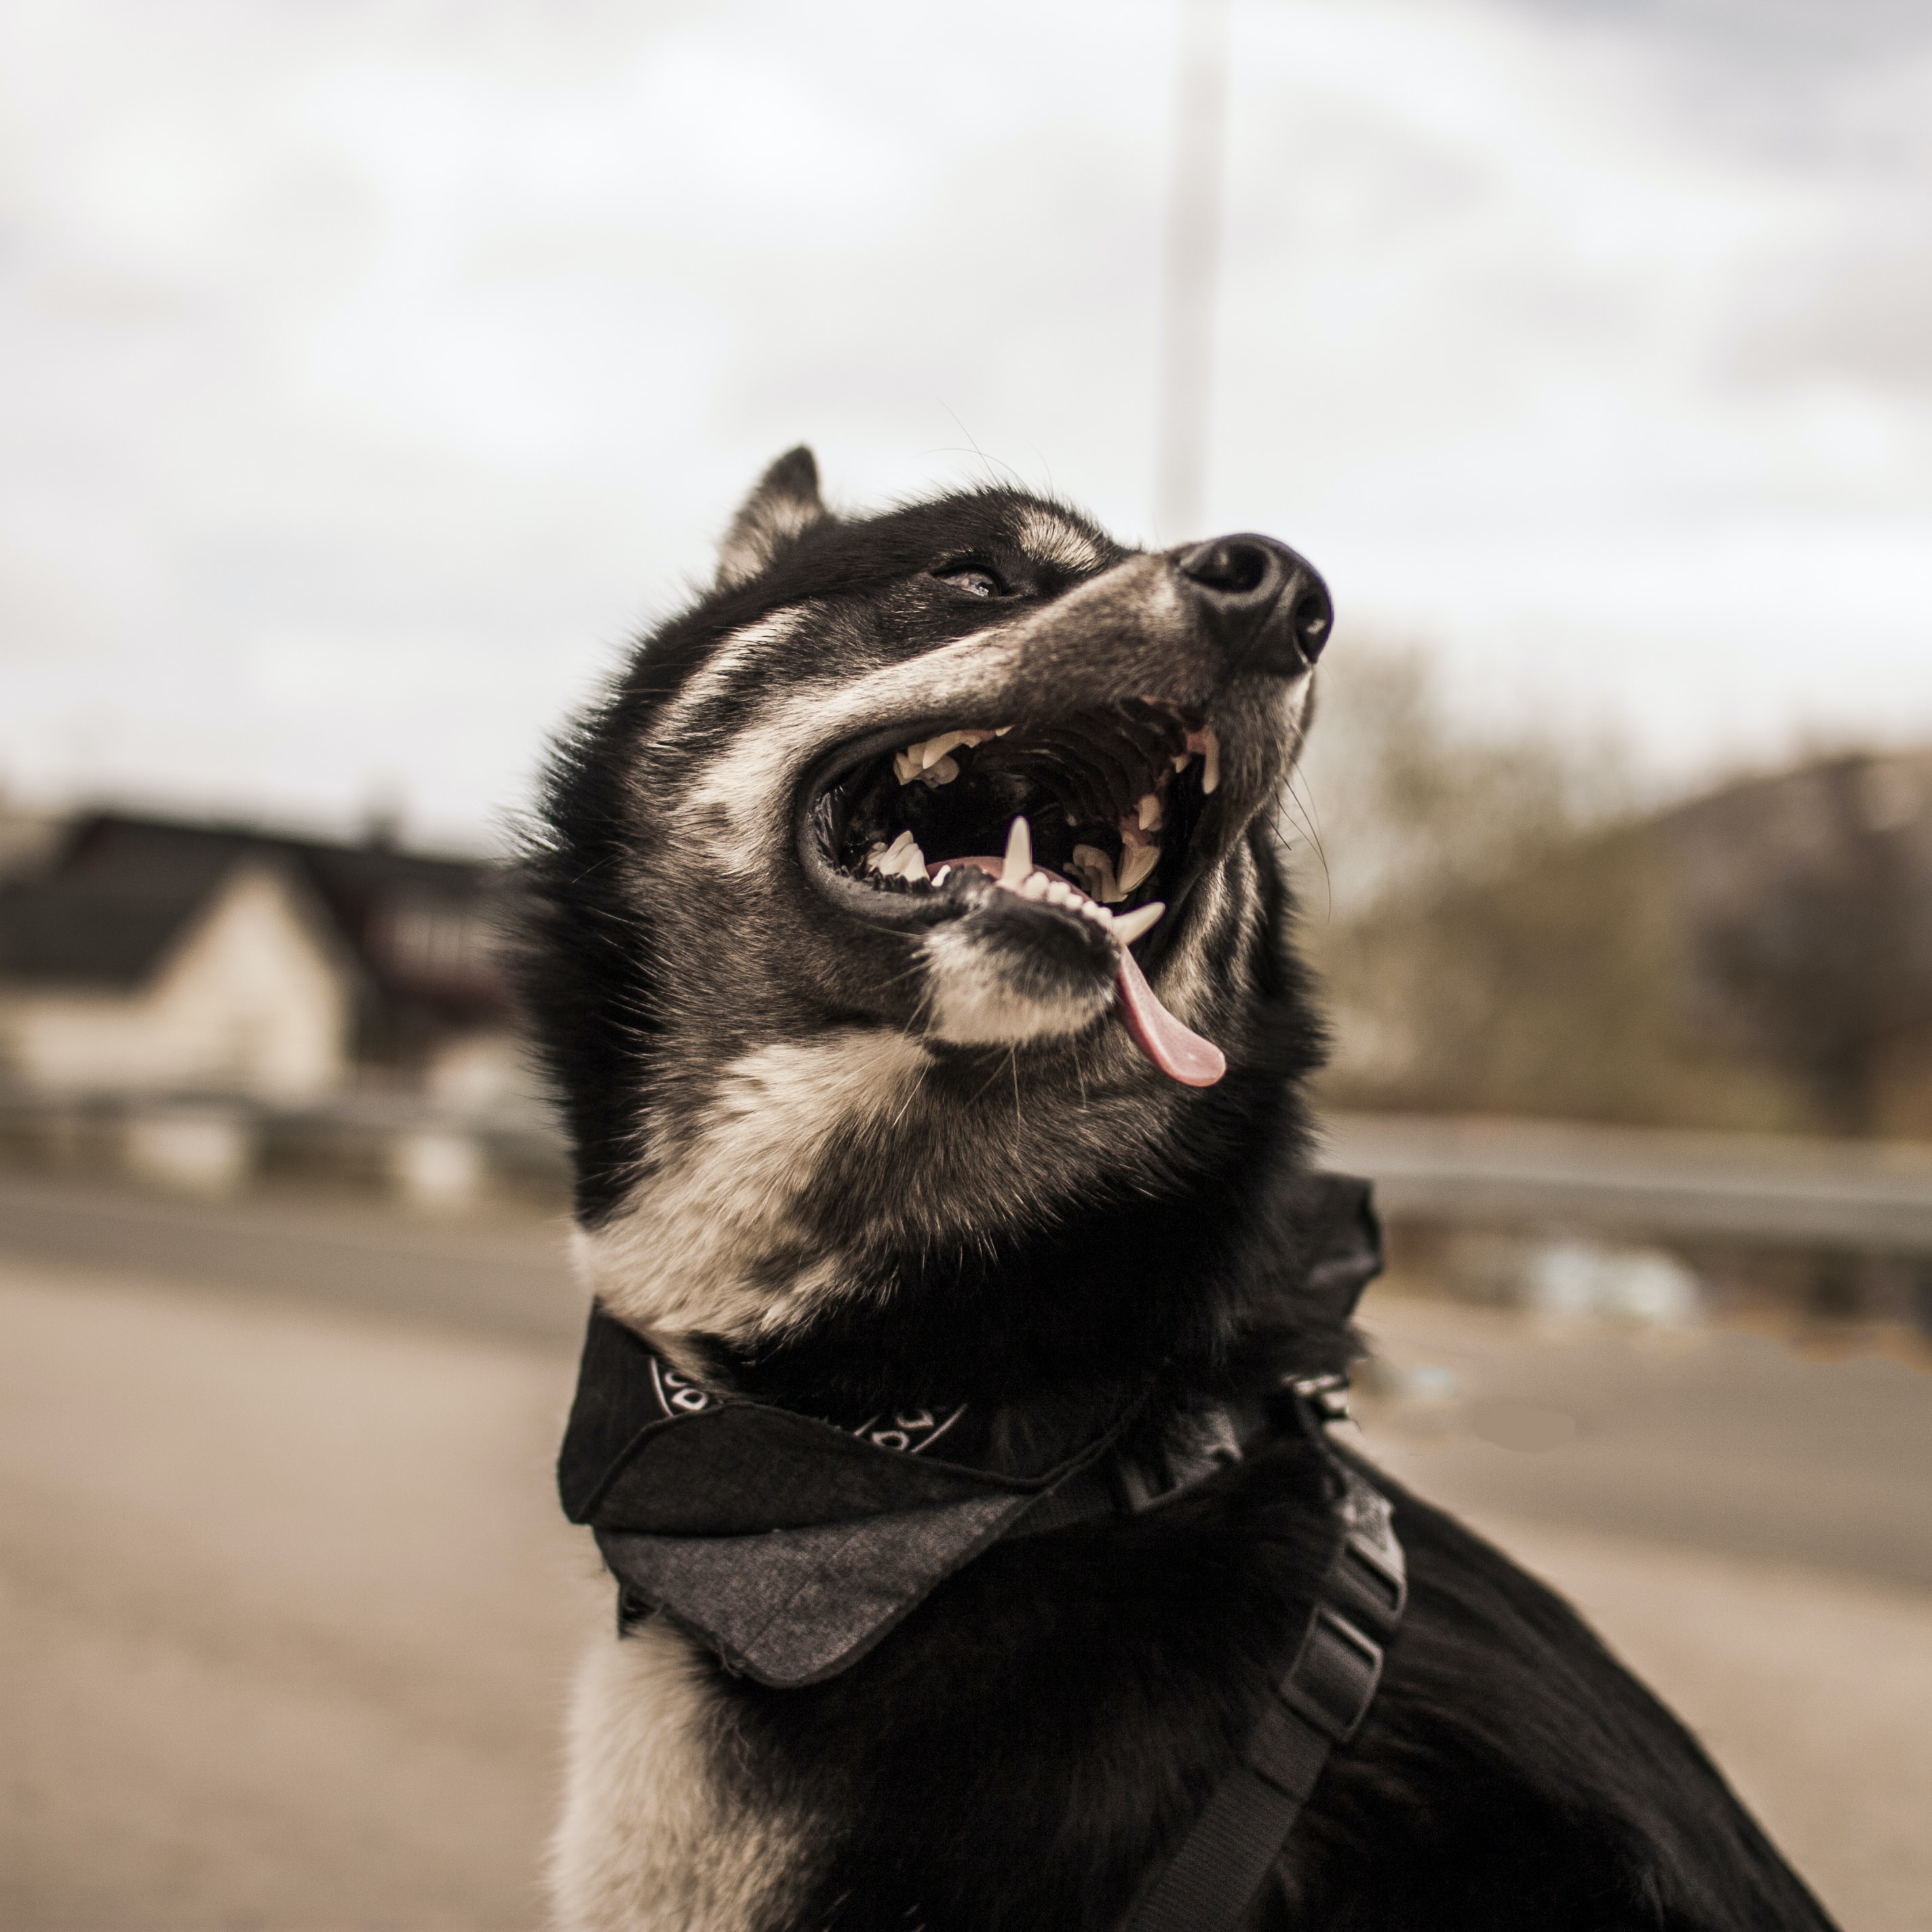 black and white dog focus photography